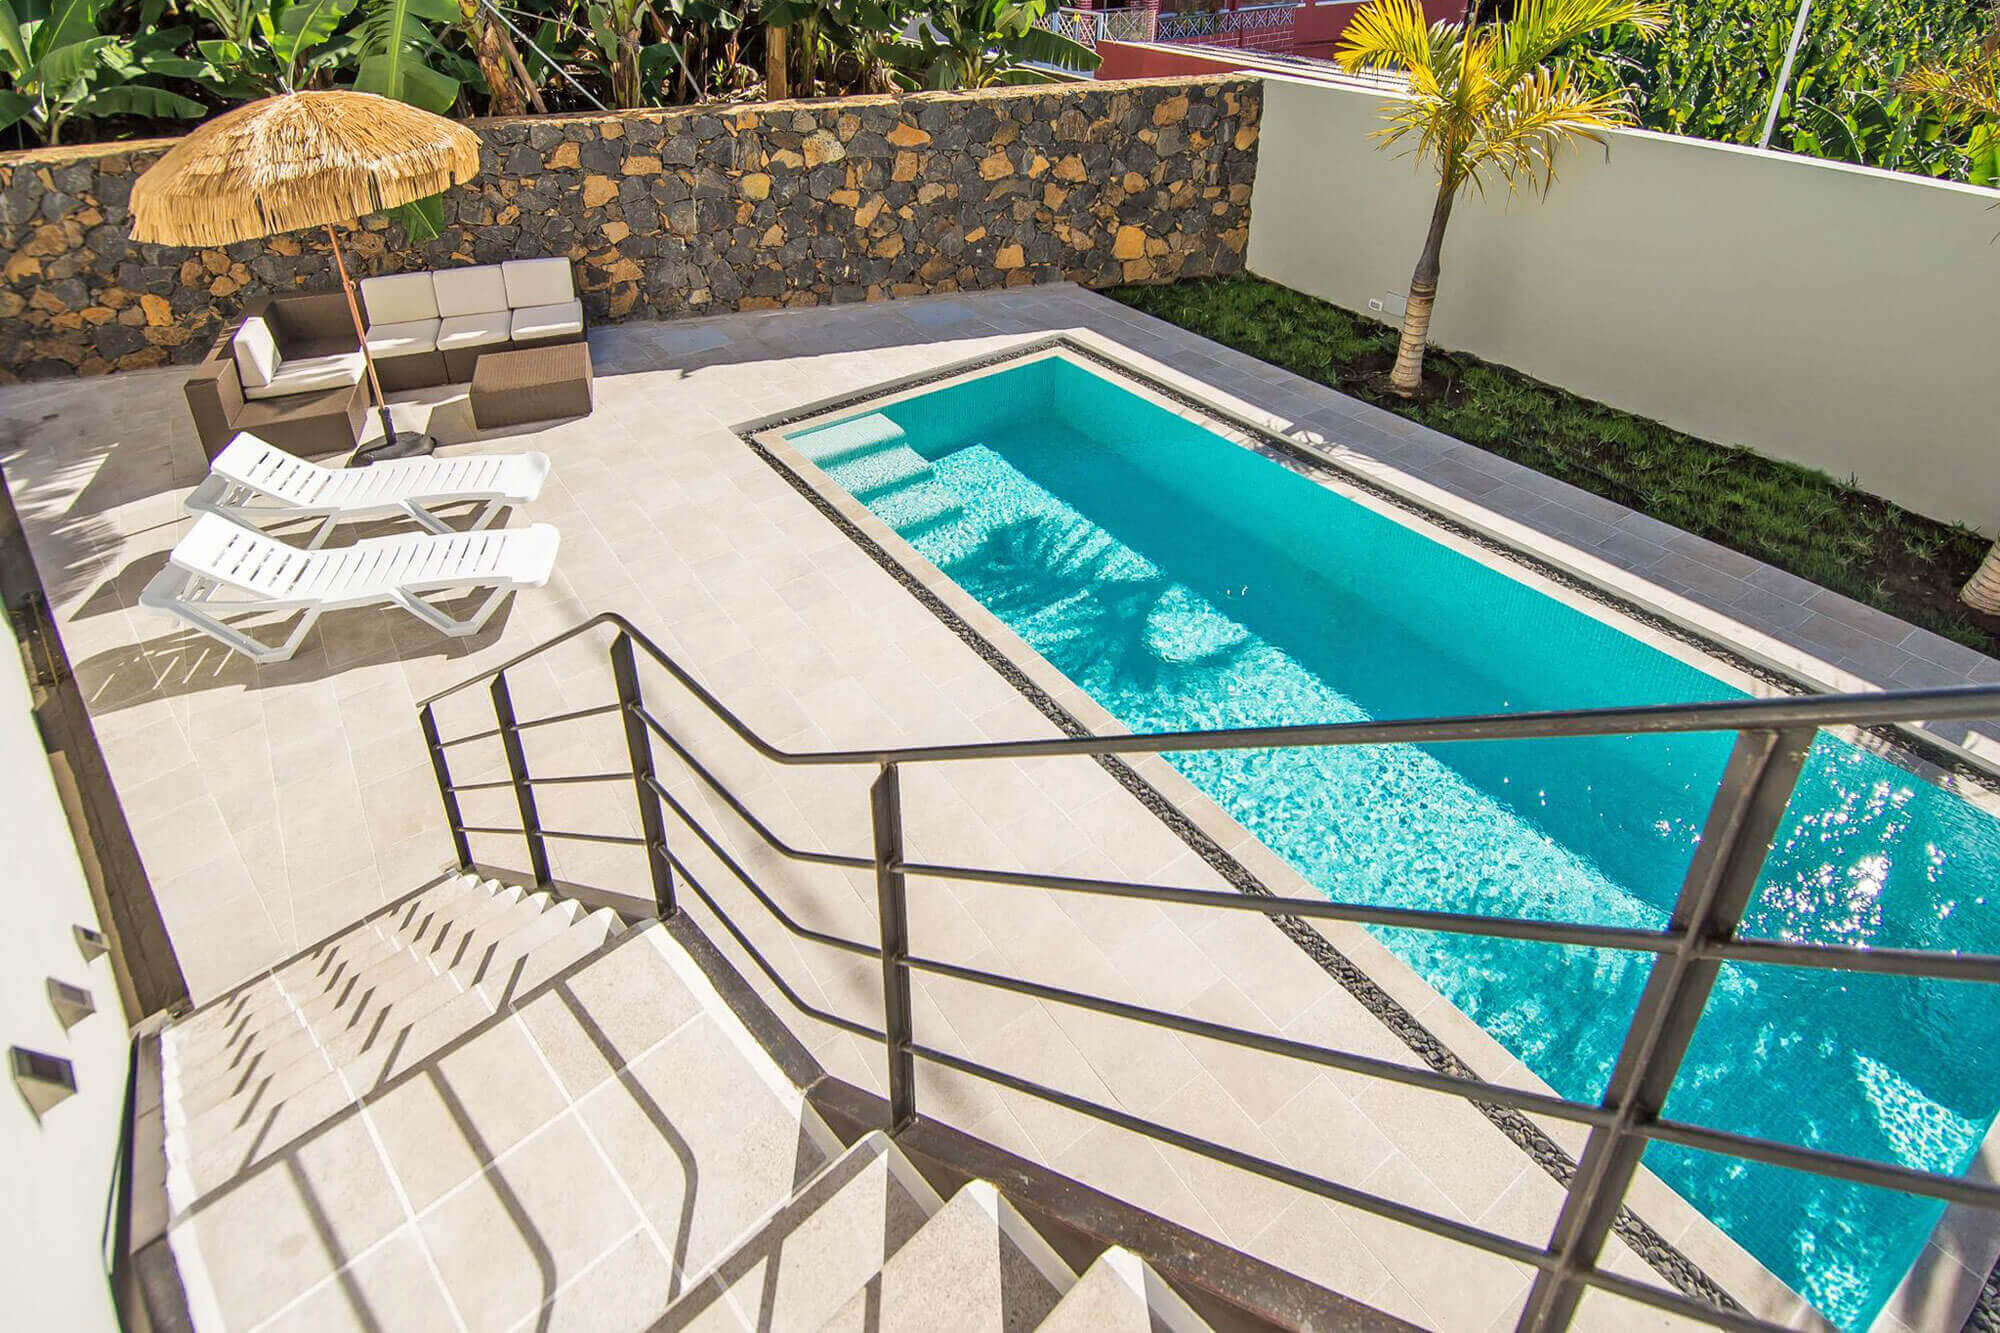 Modern holiday home on 3 floors in loft style with private pool and large roof terrace with spectacular sea views